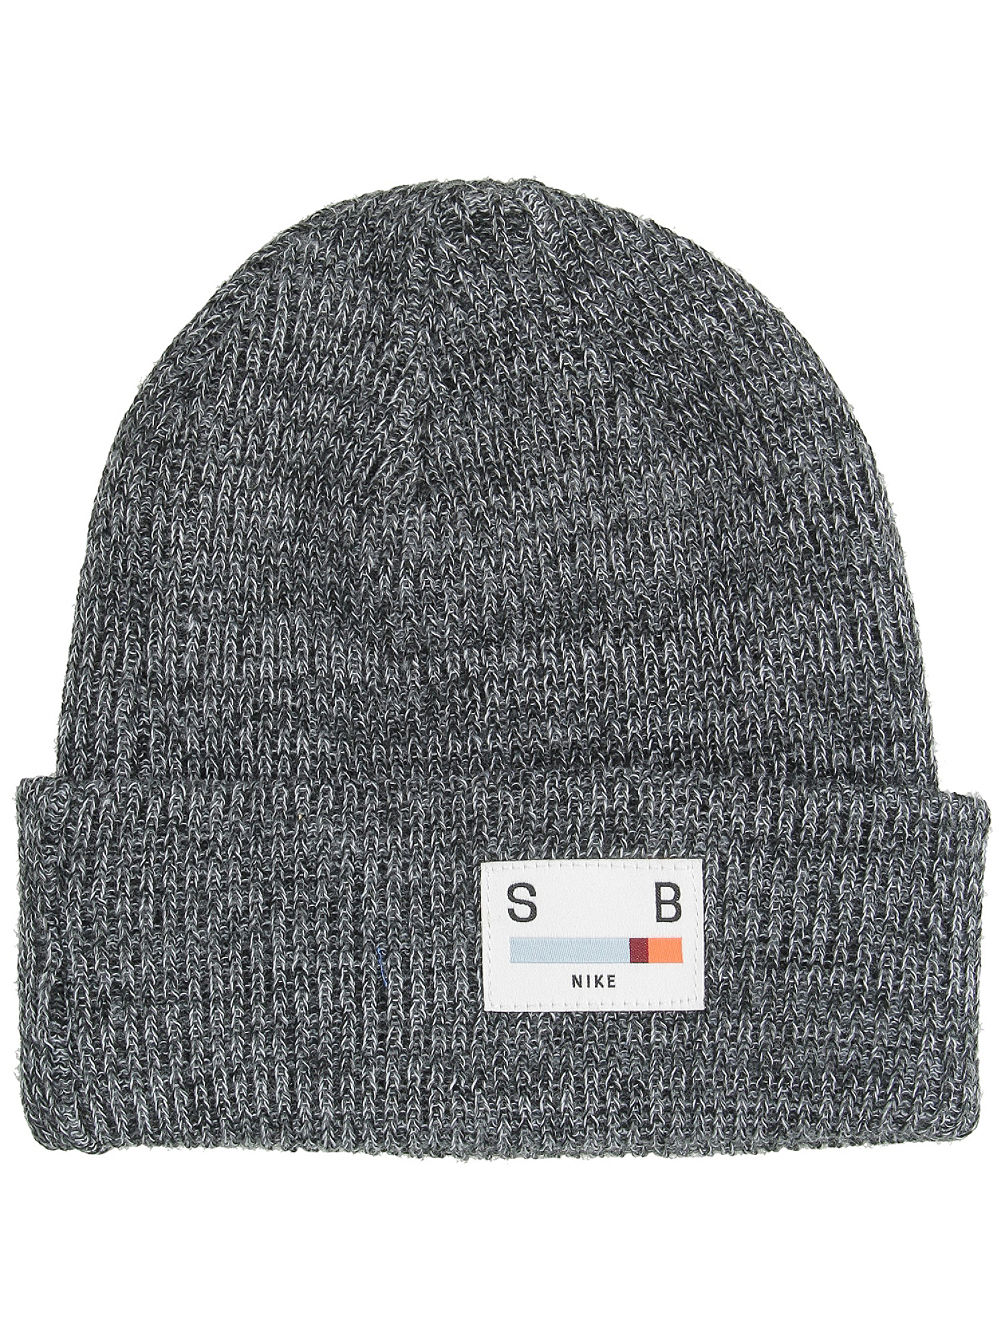 d8521bbd33a Buy Nike SB Surplus Beanie online at Blue Tomato